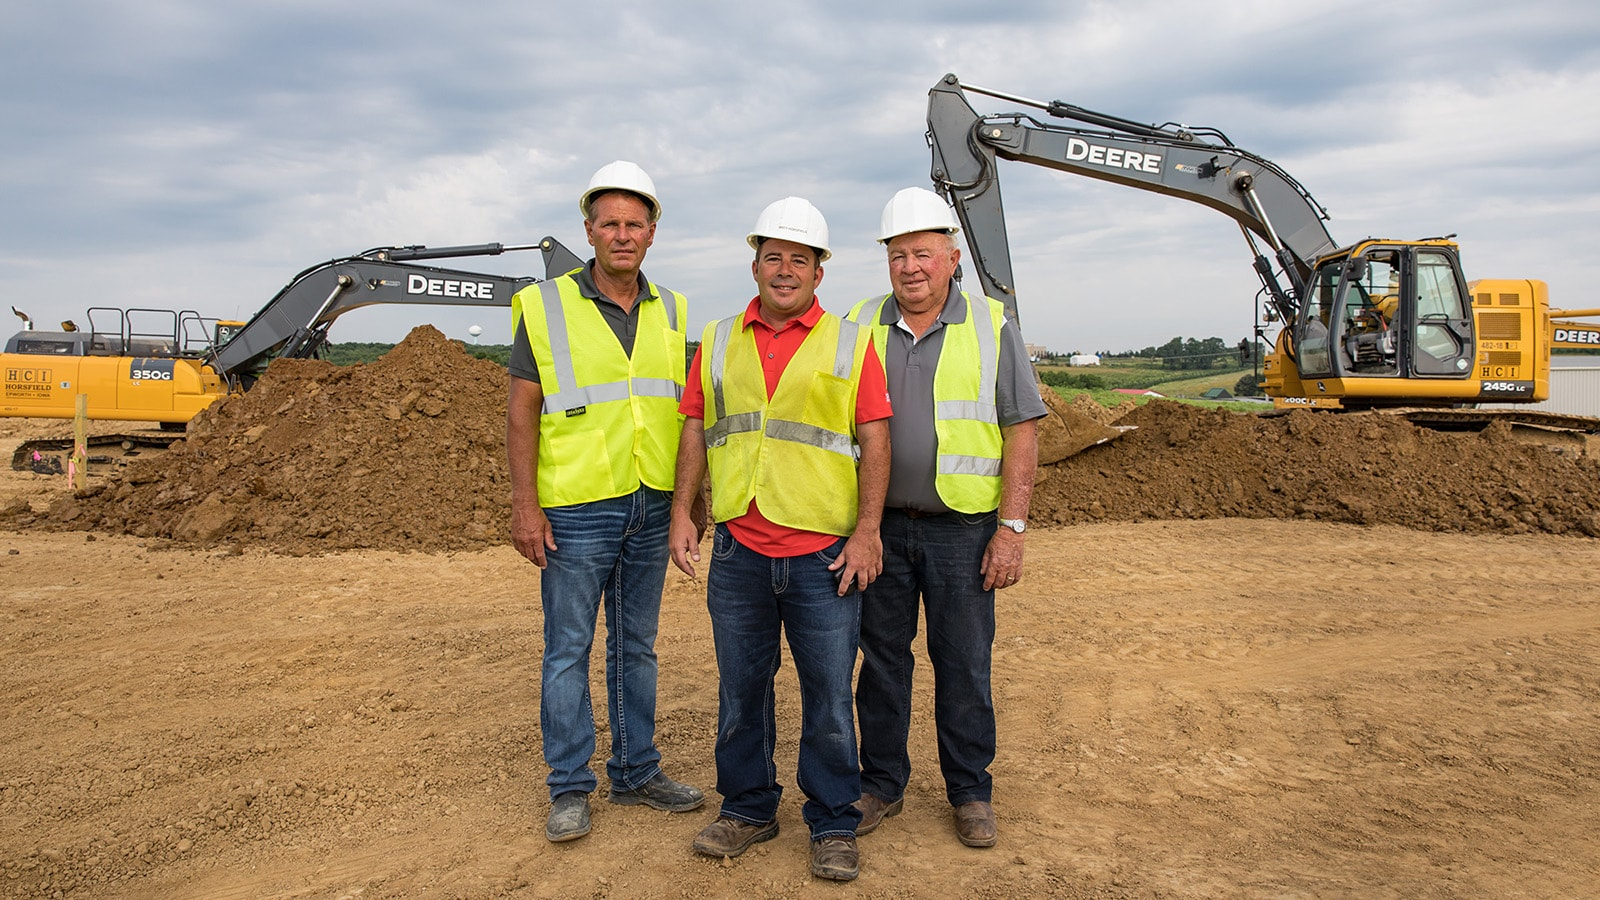 Pat, Matt and Rod Horsfield of Horsfield Companies stand in front of two of their John Deere excavators